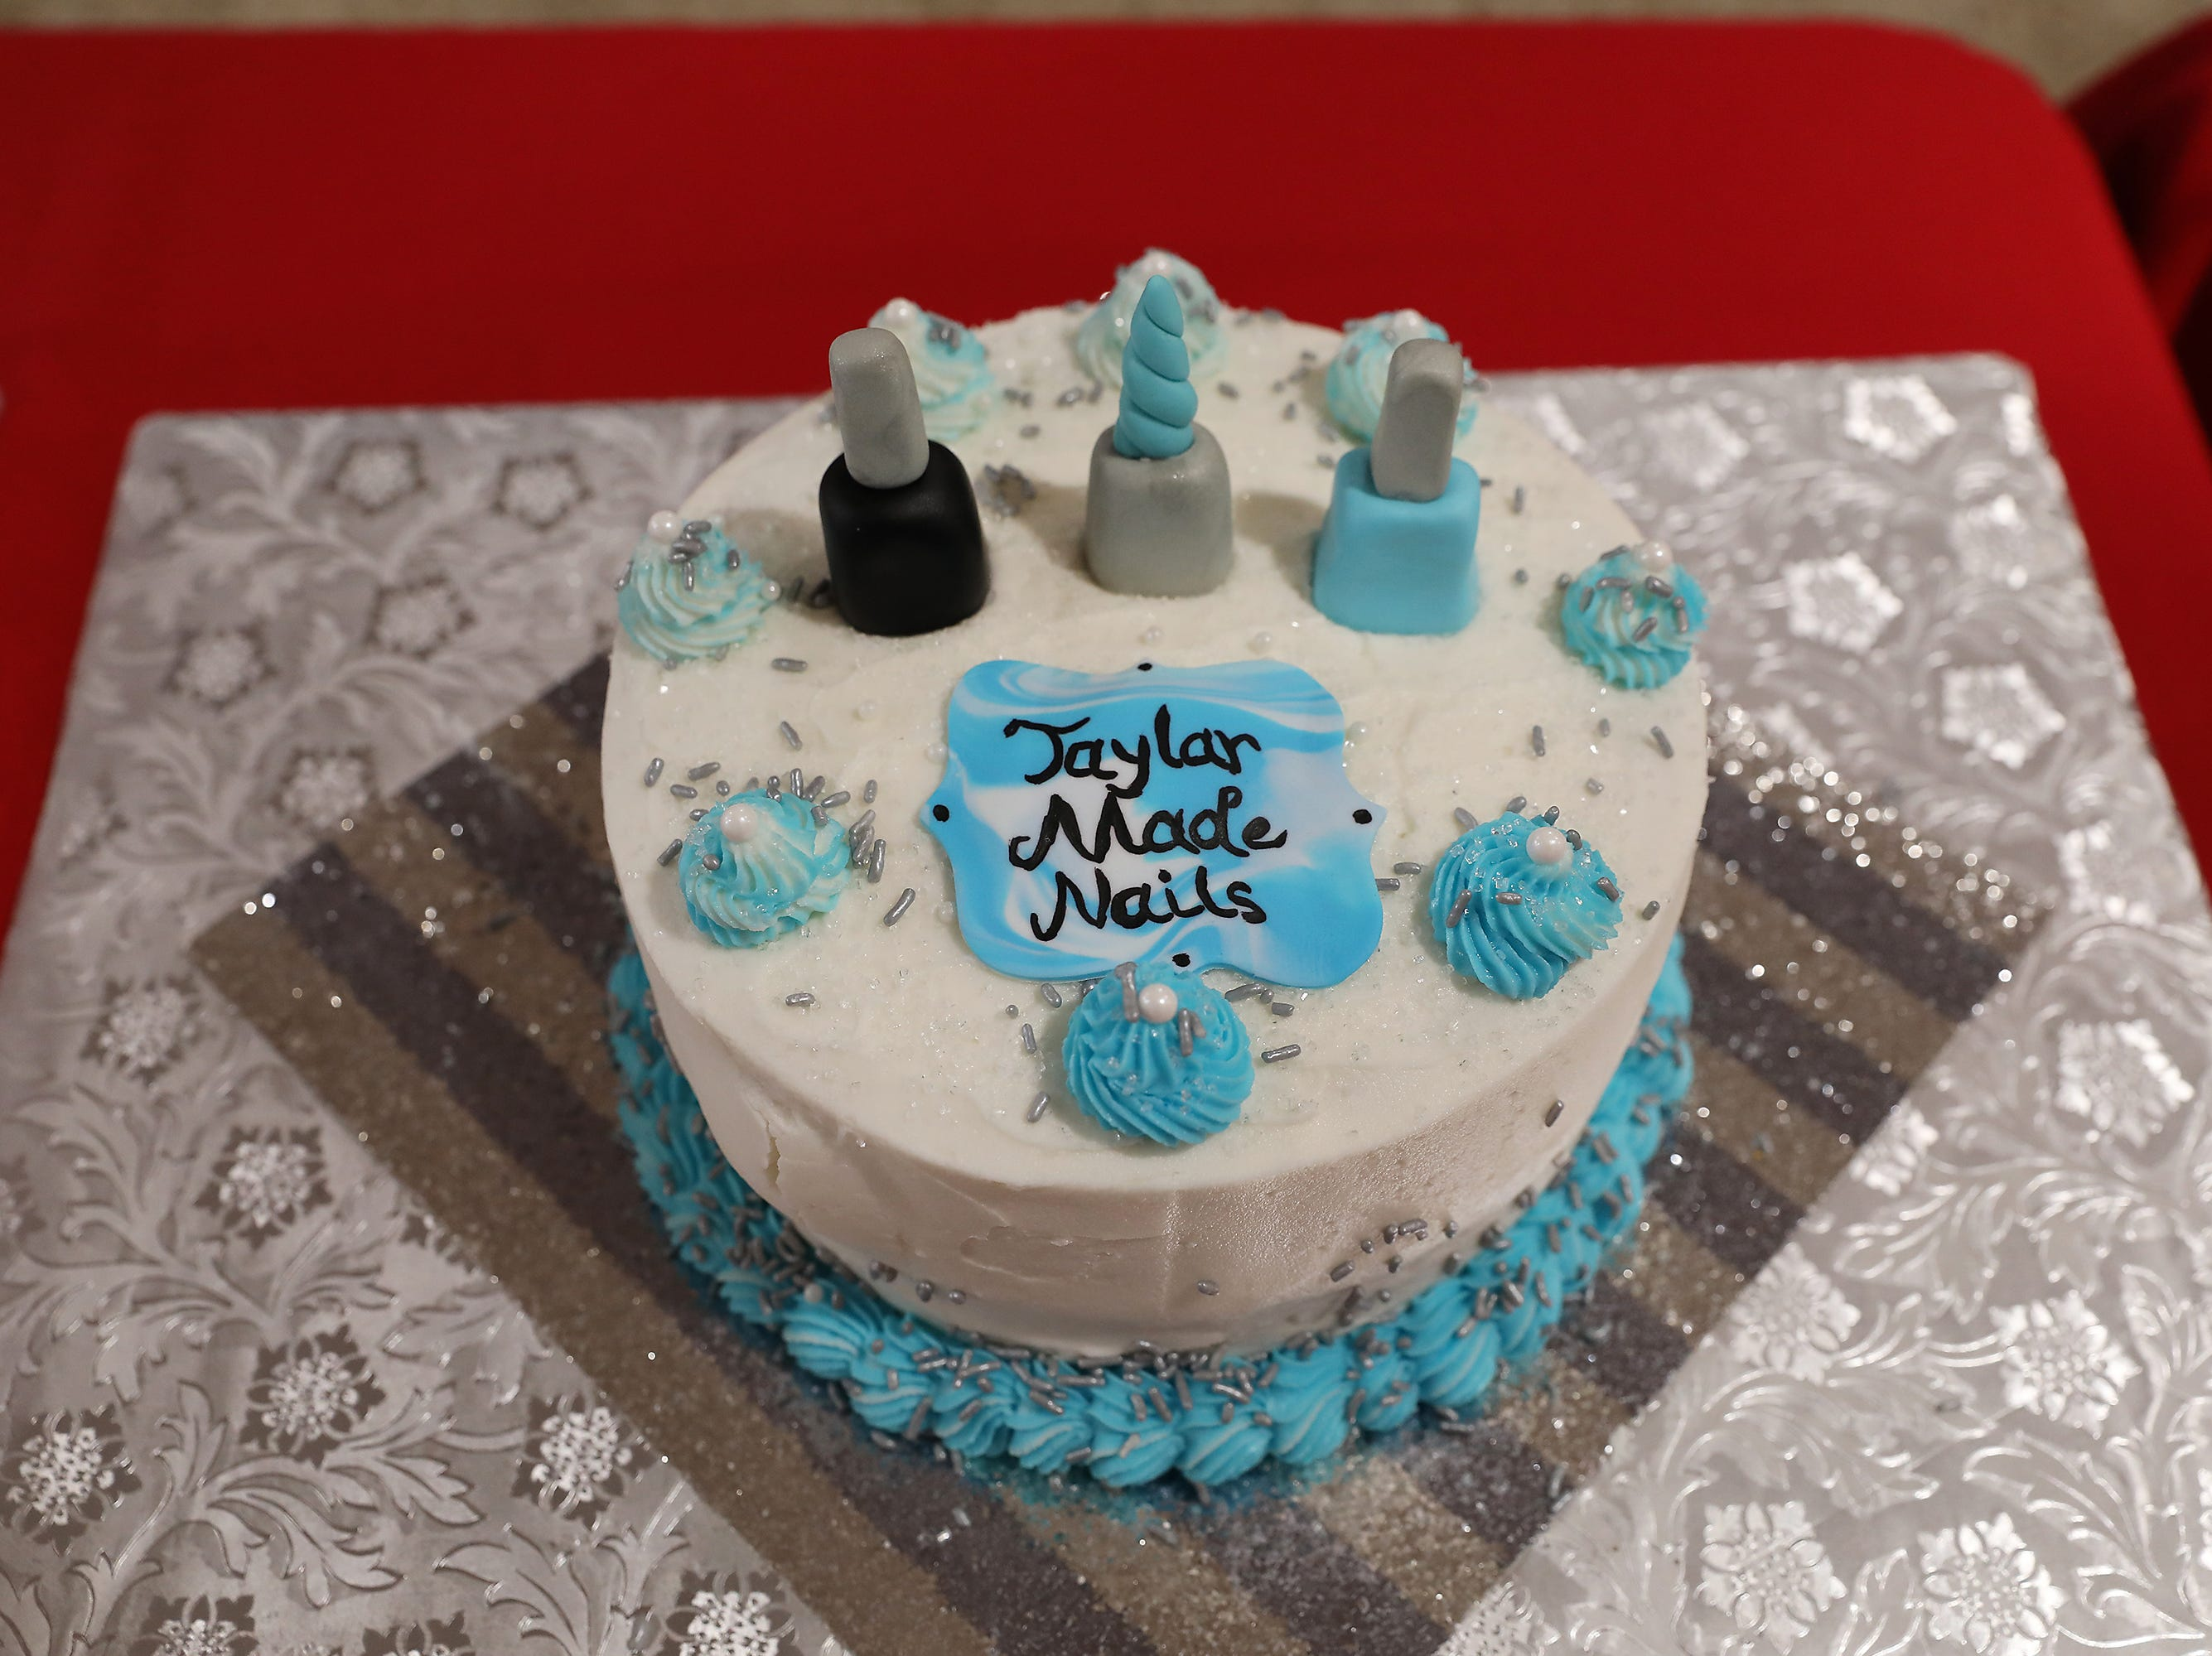 9:30 A.M. Thursday cake 34 Taylar Made Nails - 3 gift certificates for a shellac manicure and pedicure; $225